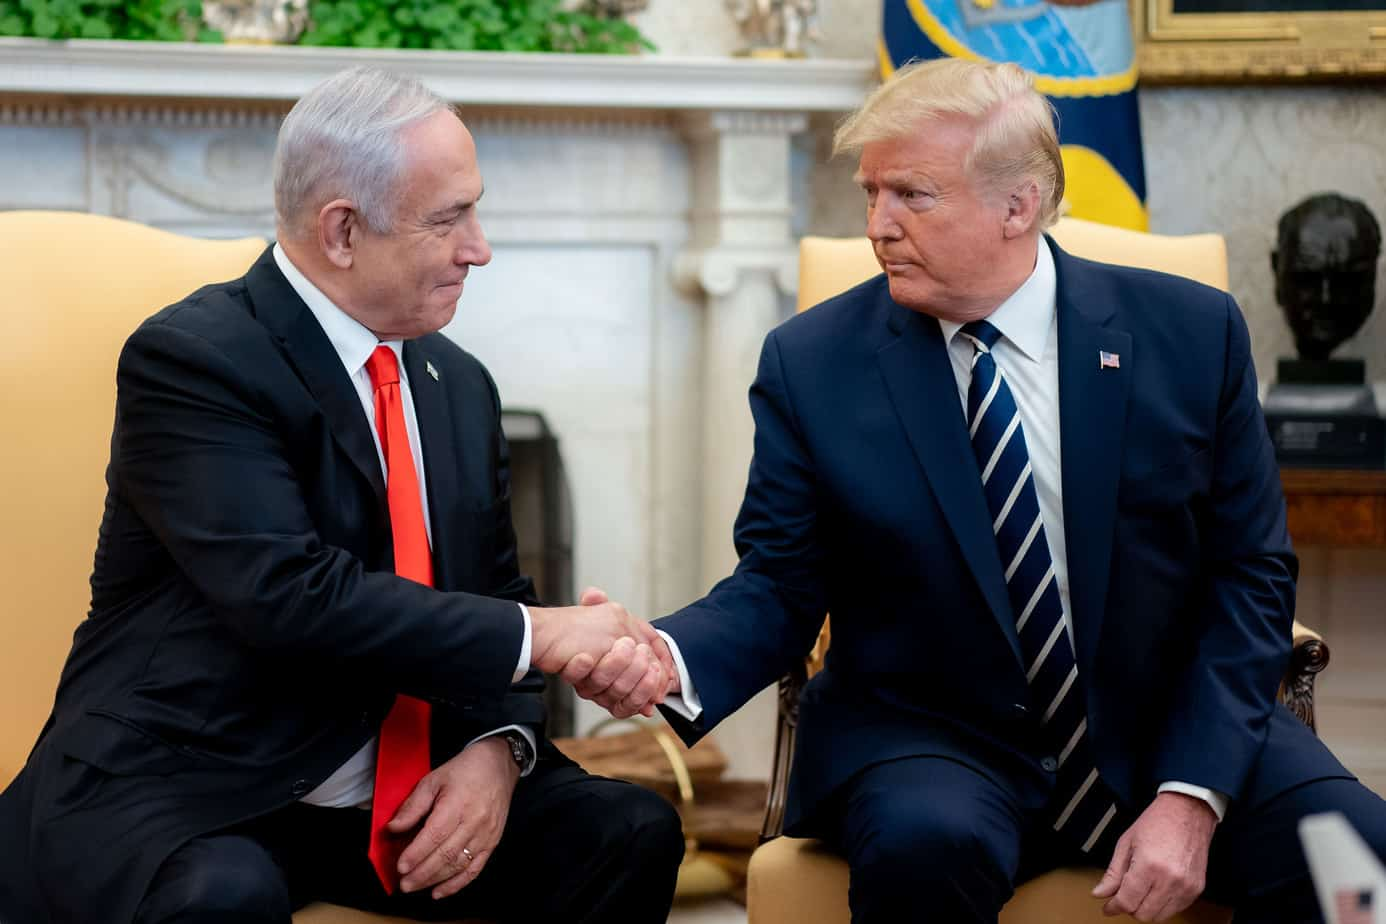 Honoring the friendship between President Trump and Israel and his steps towards Middle East peace